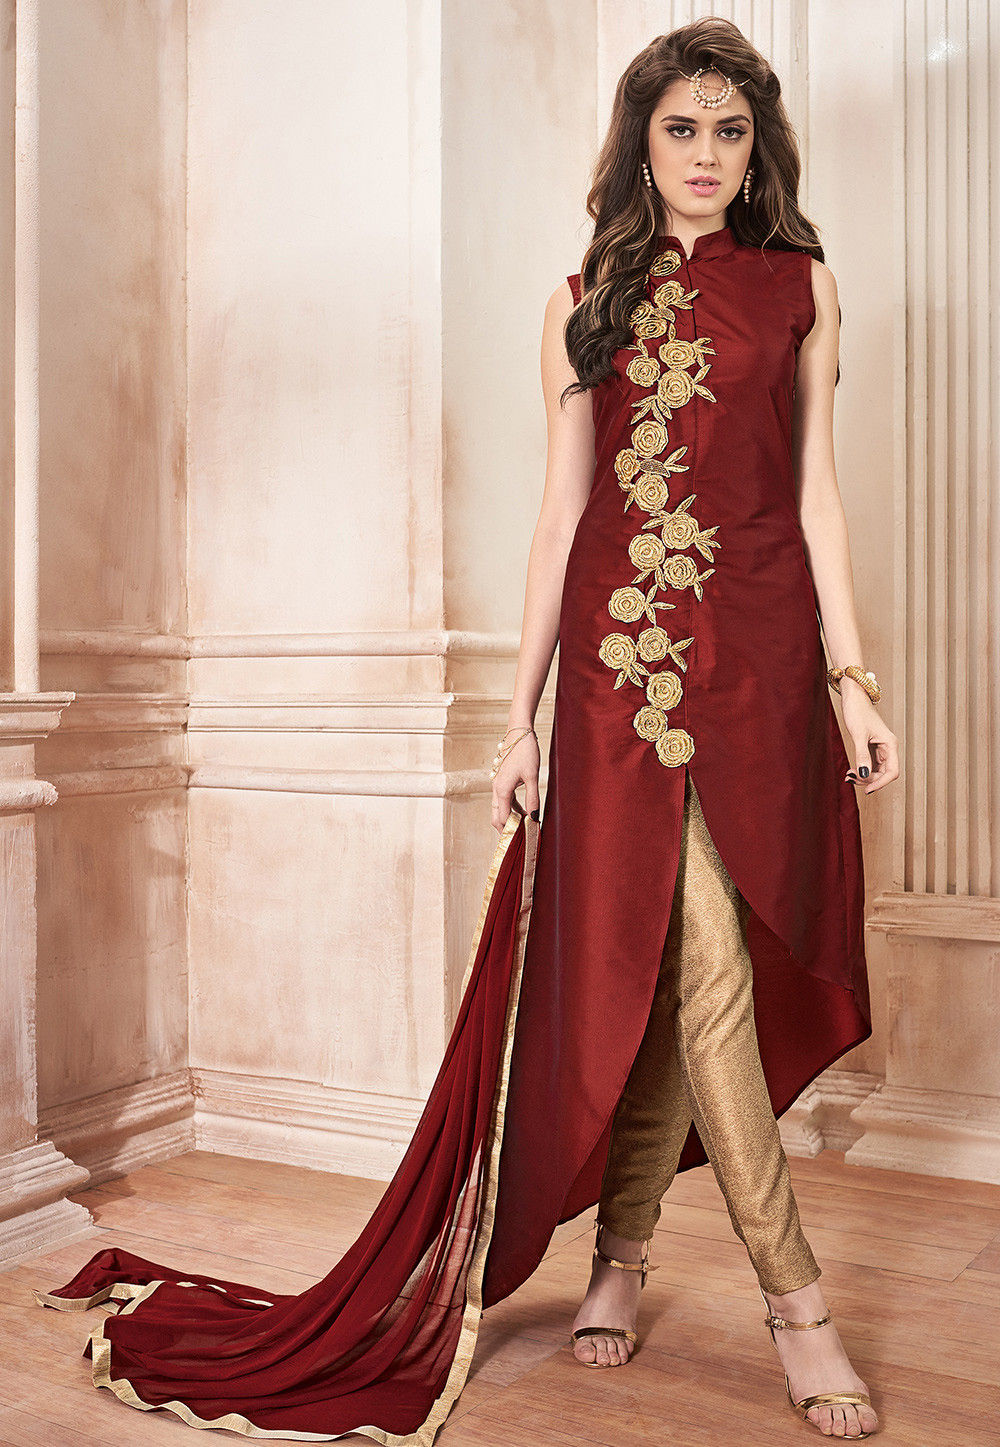 d9bfef42f9c Embroidered Taffeta Silk Pakistani Suit in Maroon   KCH316